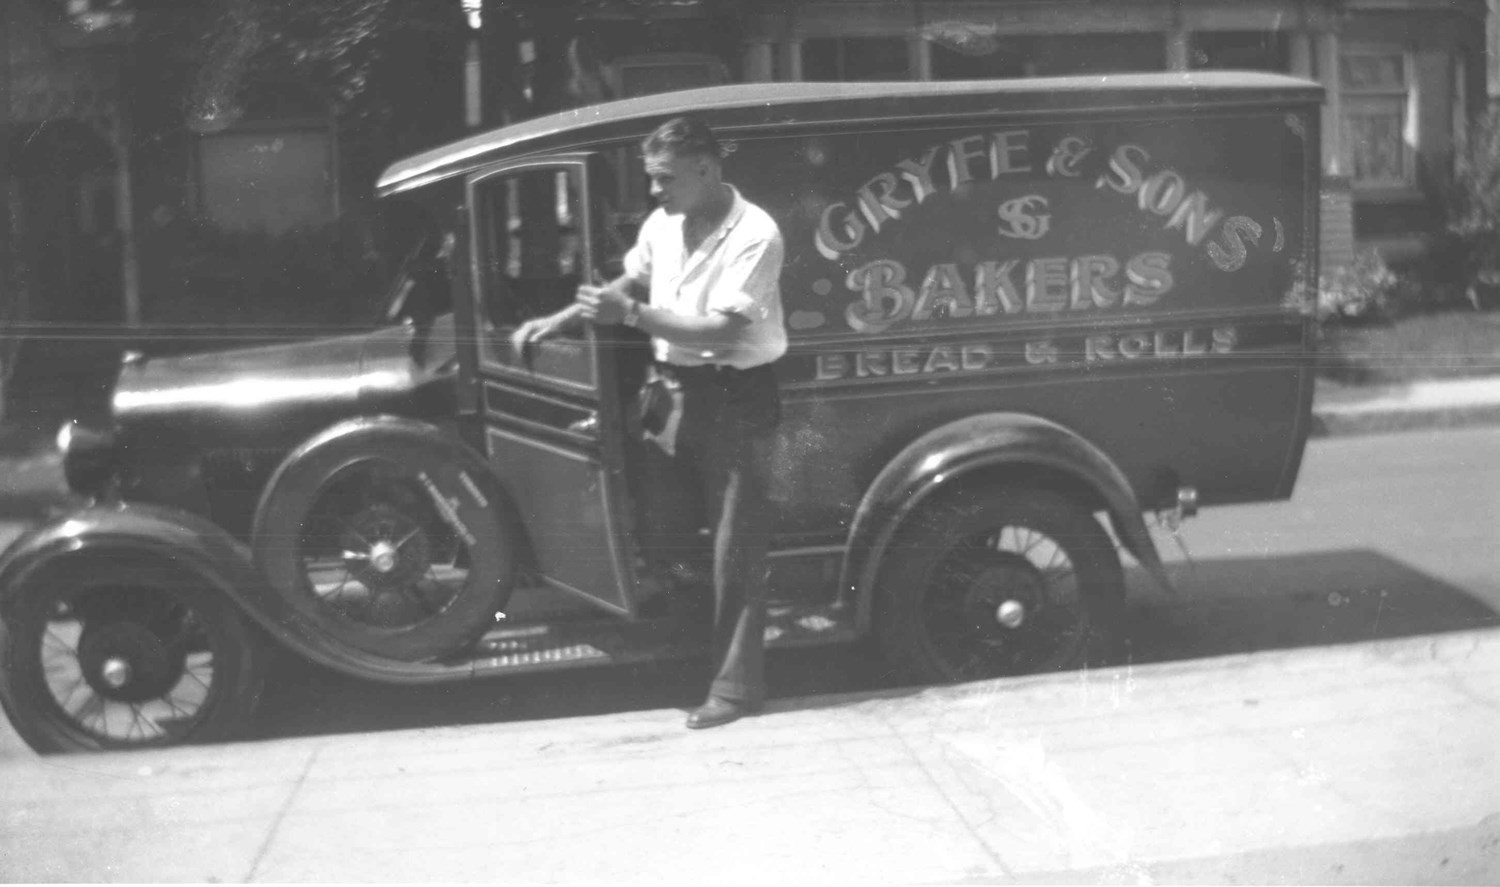 Bill Gryfe with S. Gryfe and Sons Bakery truck, ca. 1933. OJA, item 4520.